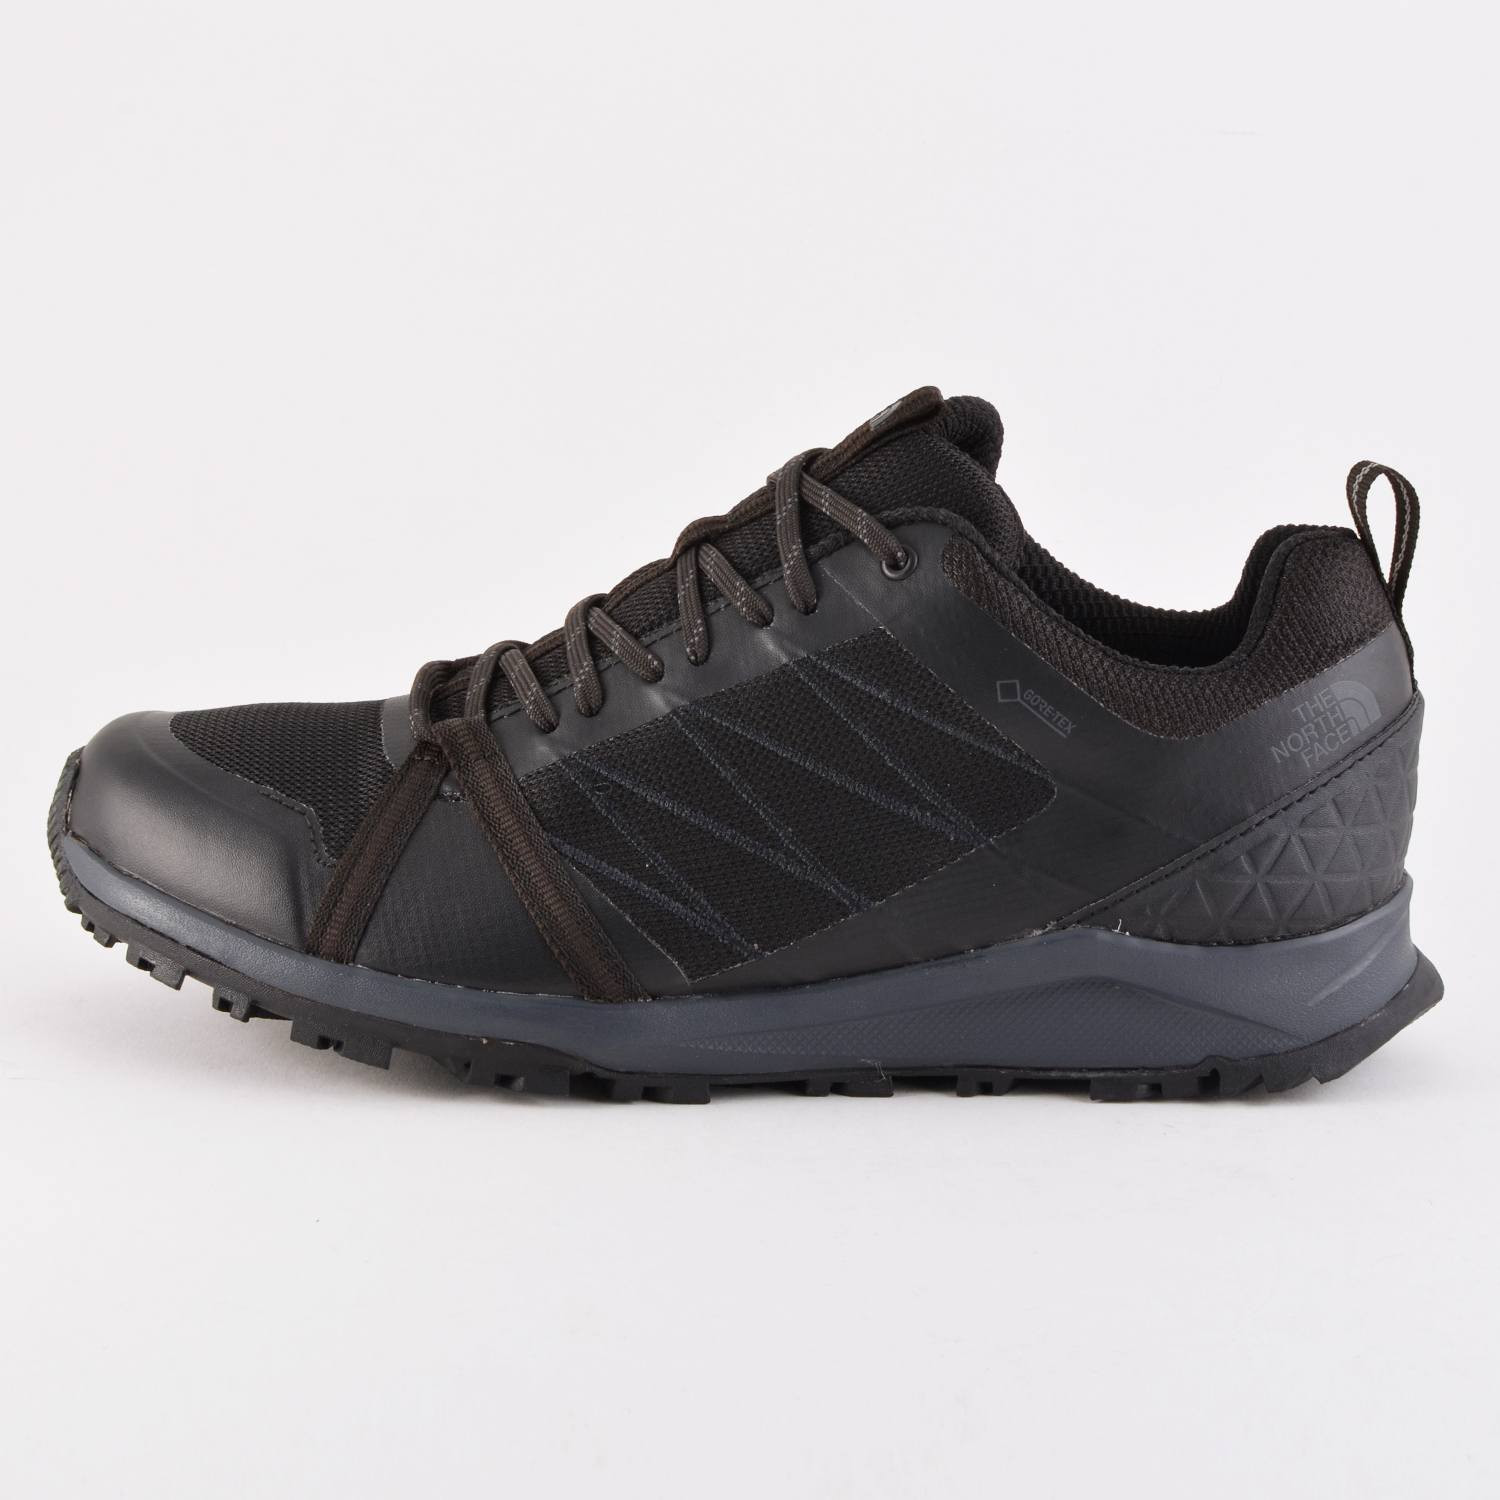 THE NORTH FACE M LW FP II GTX (9000036694_41174)